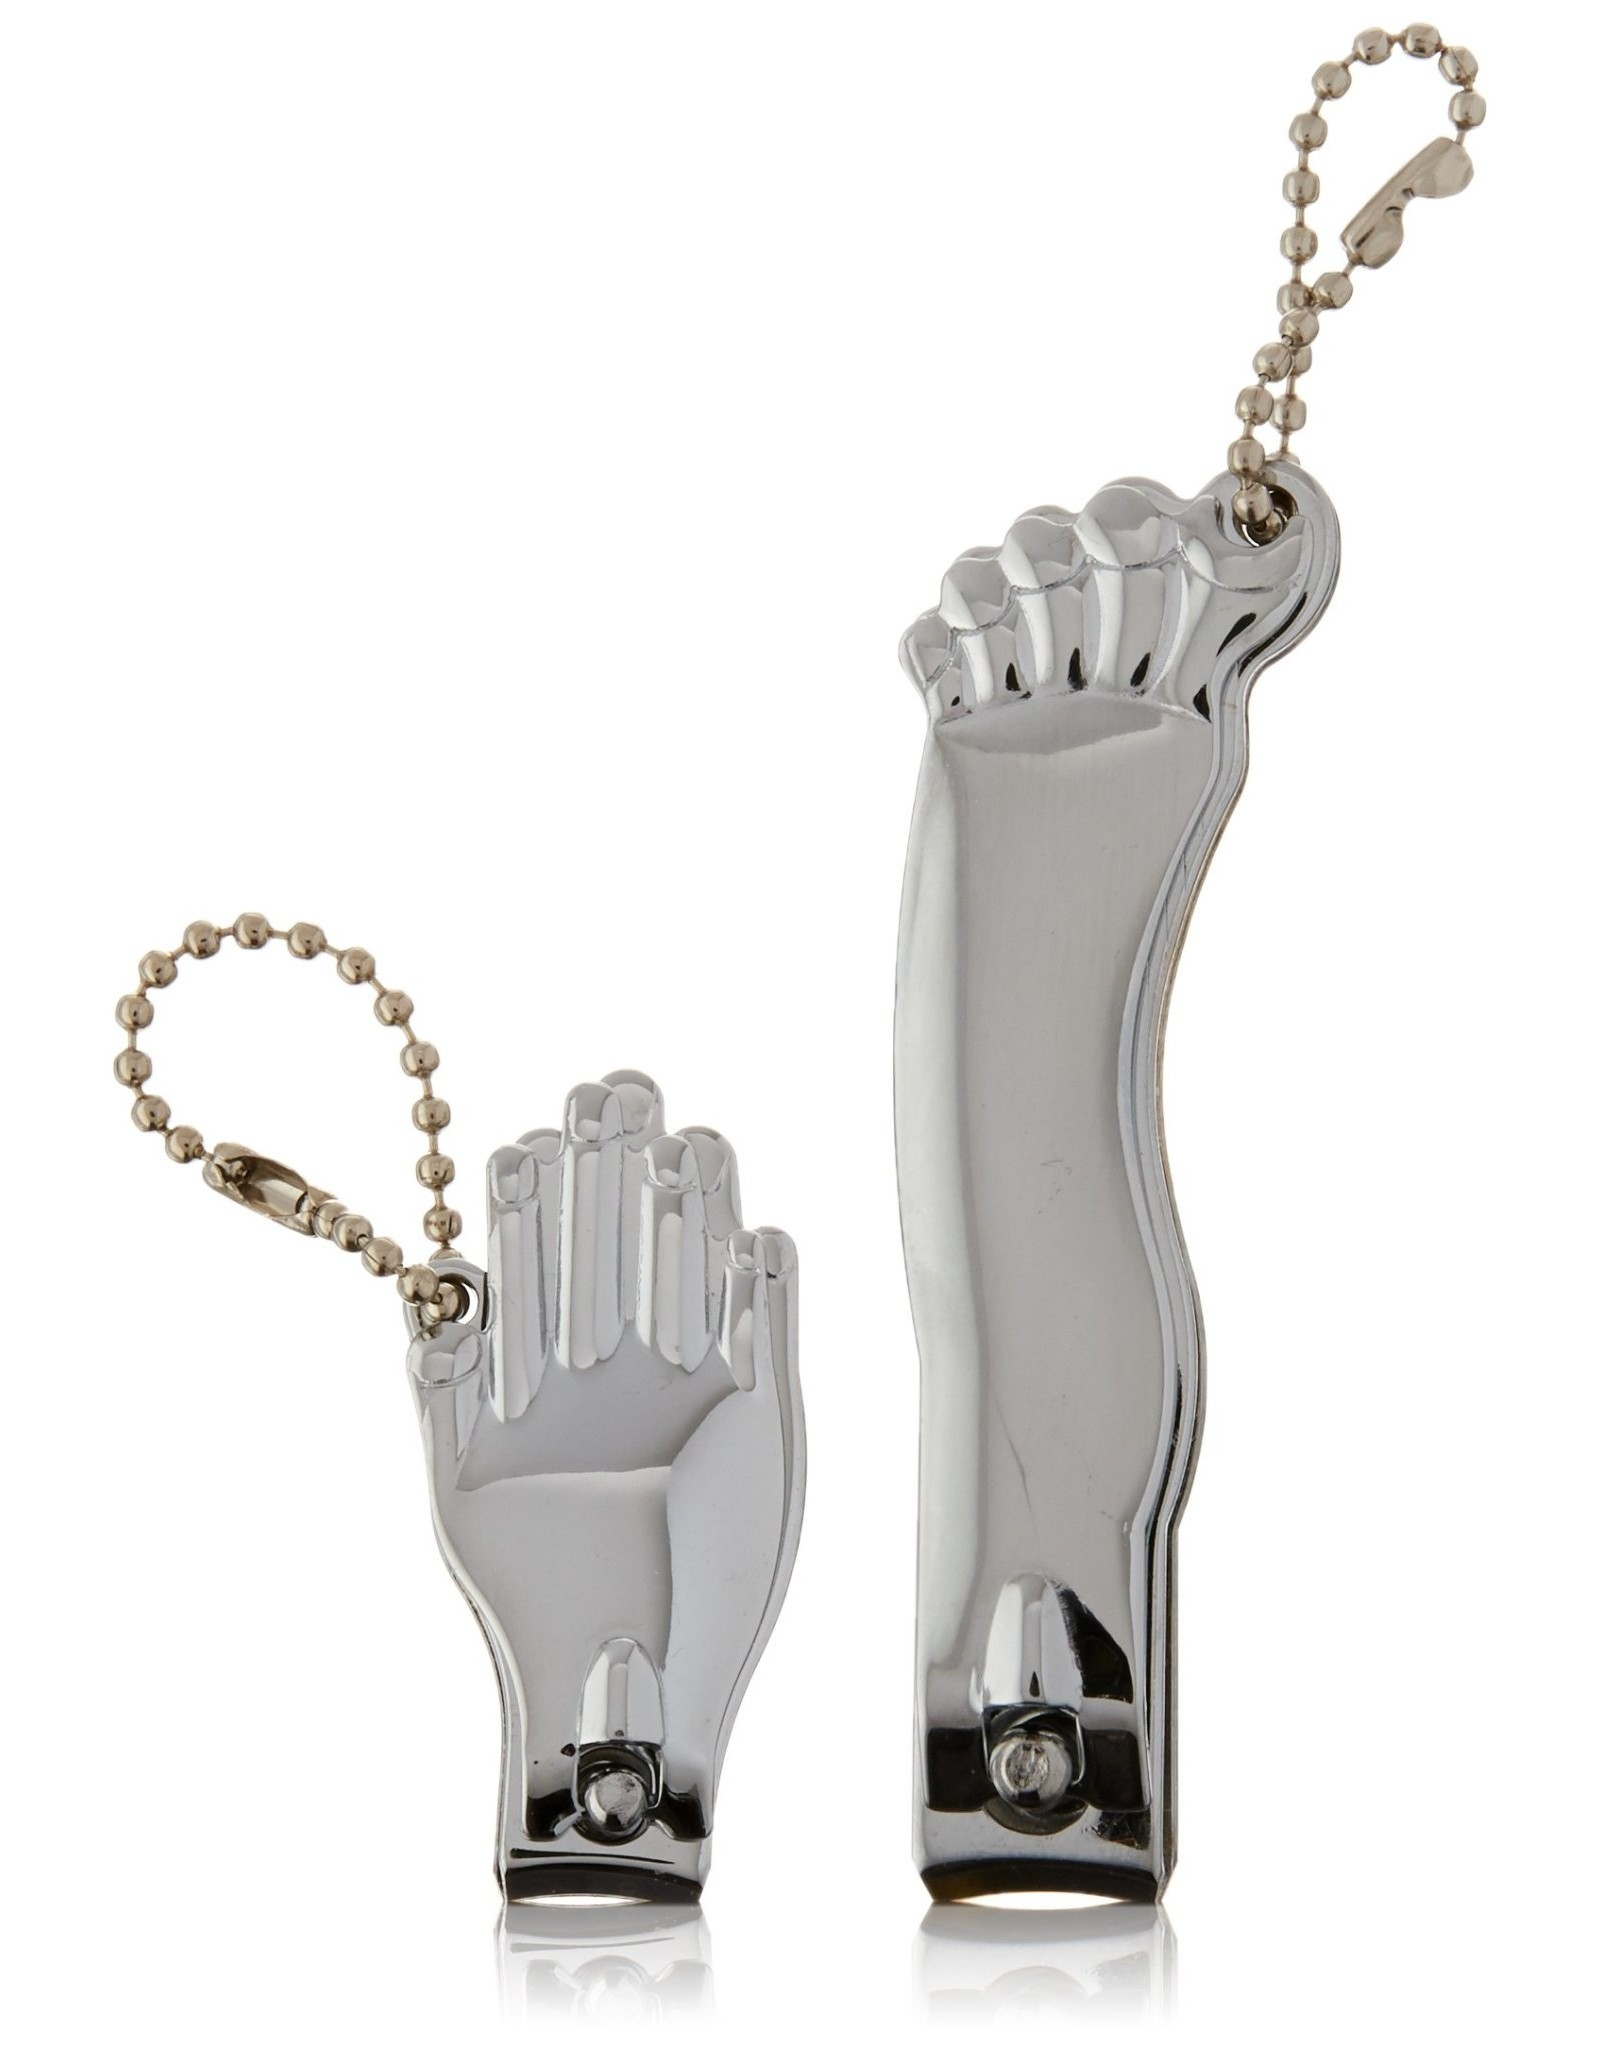 nail clippers - hand & foot (chrome)